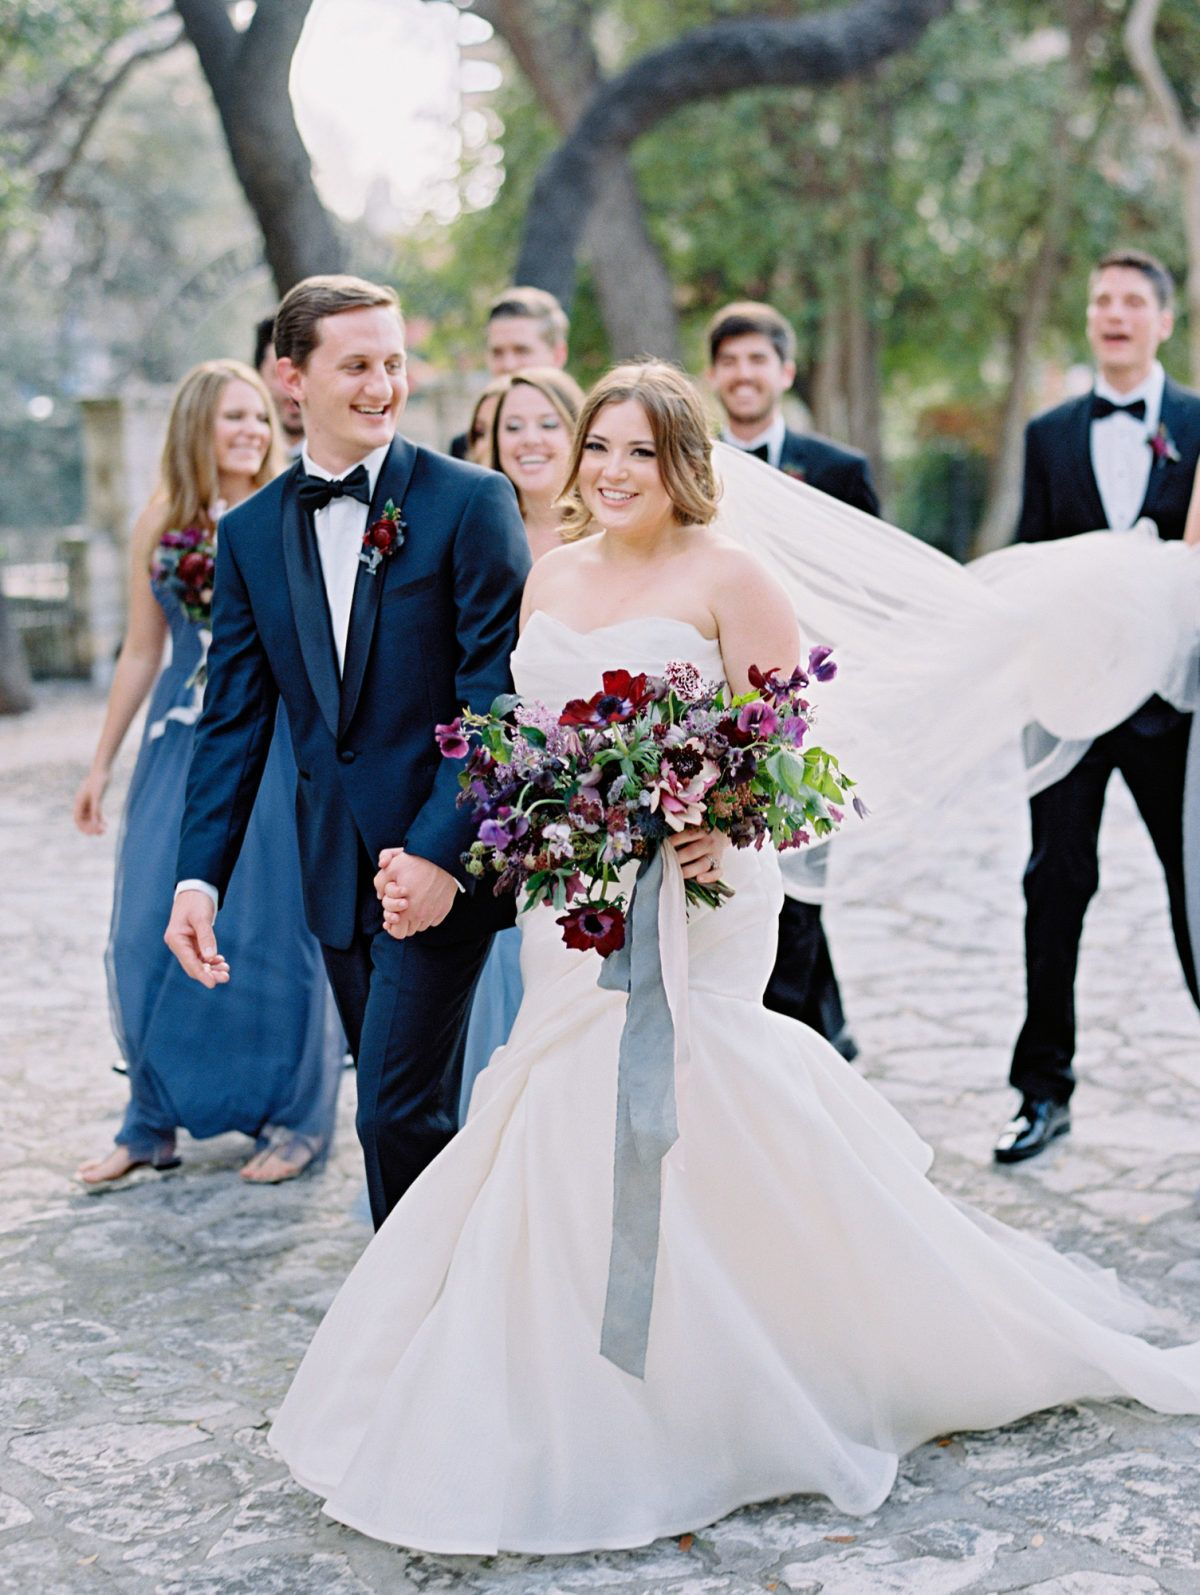 A Moody Blue Wedding Inspired by The Bride's Love of Fine Art